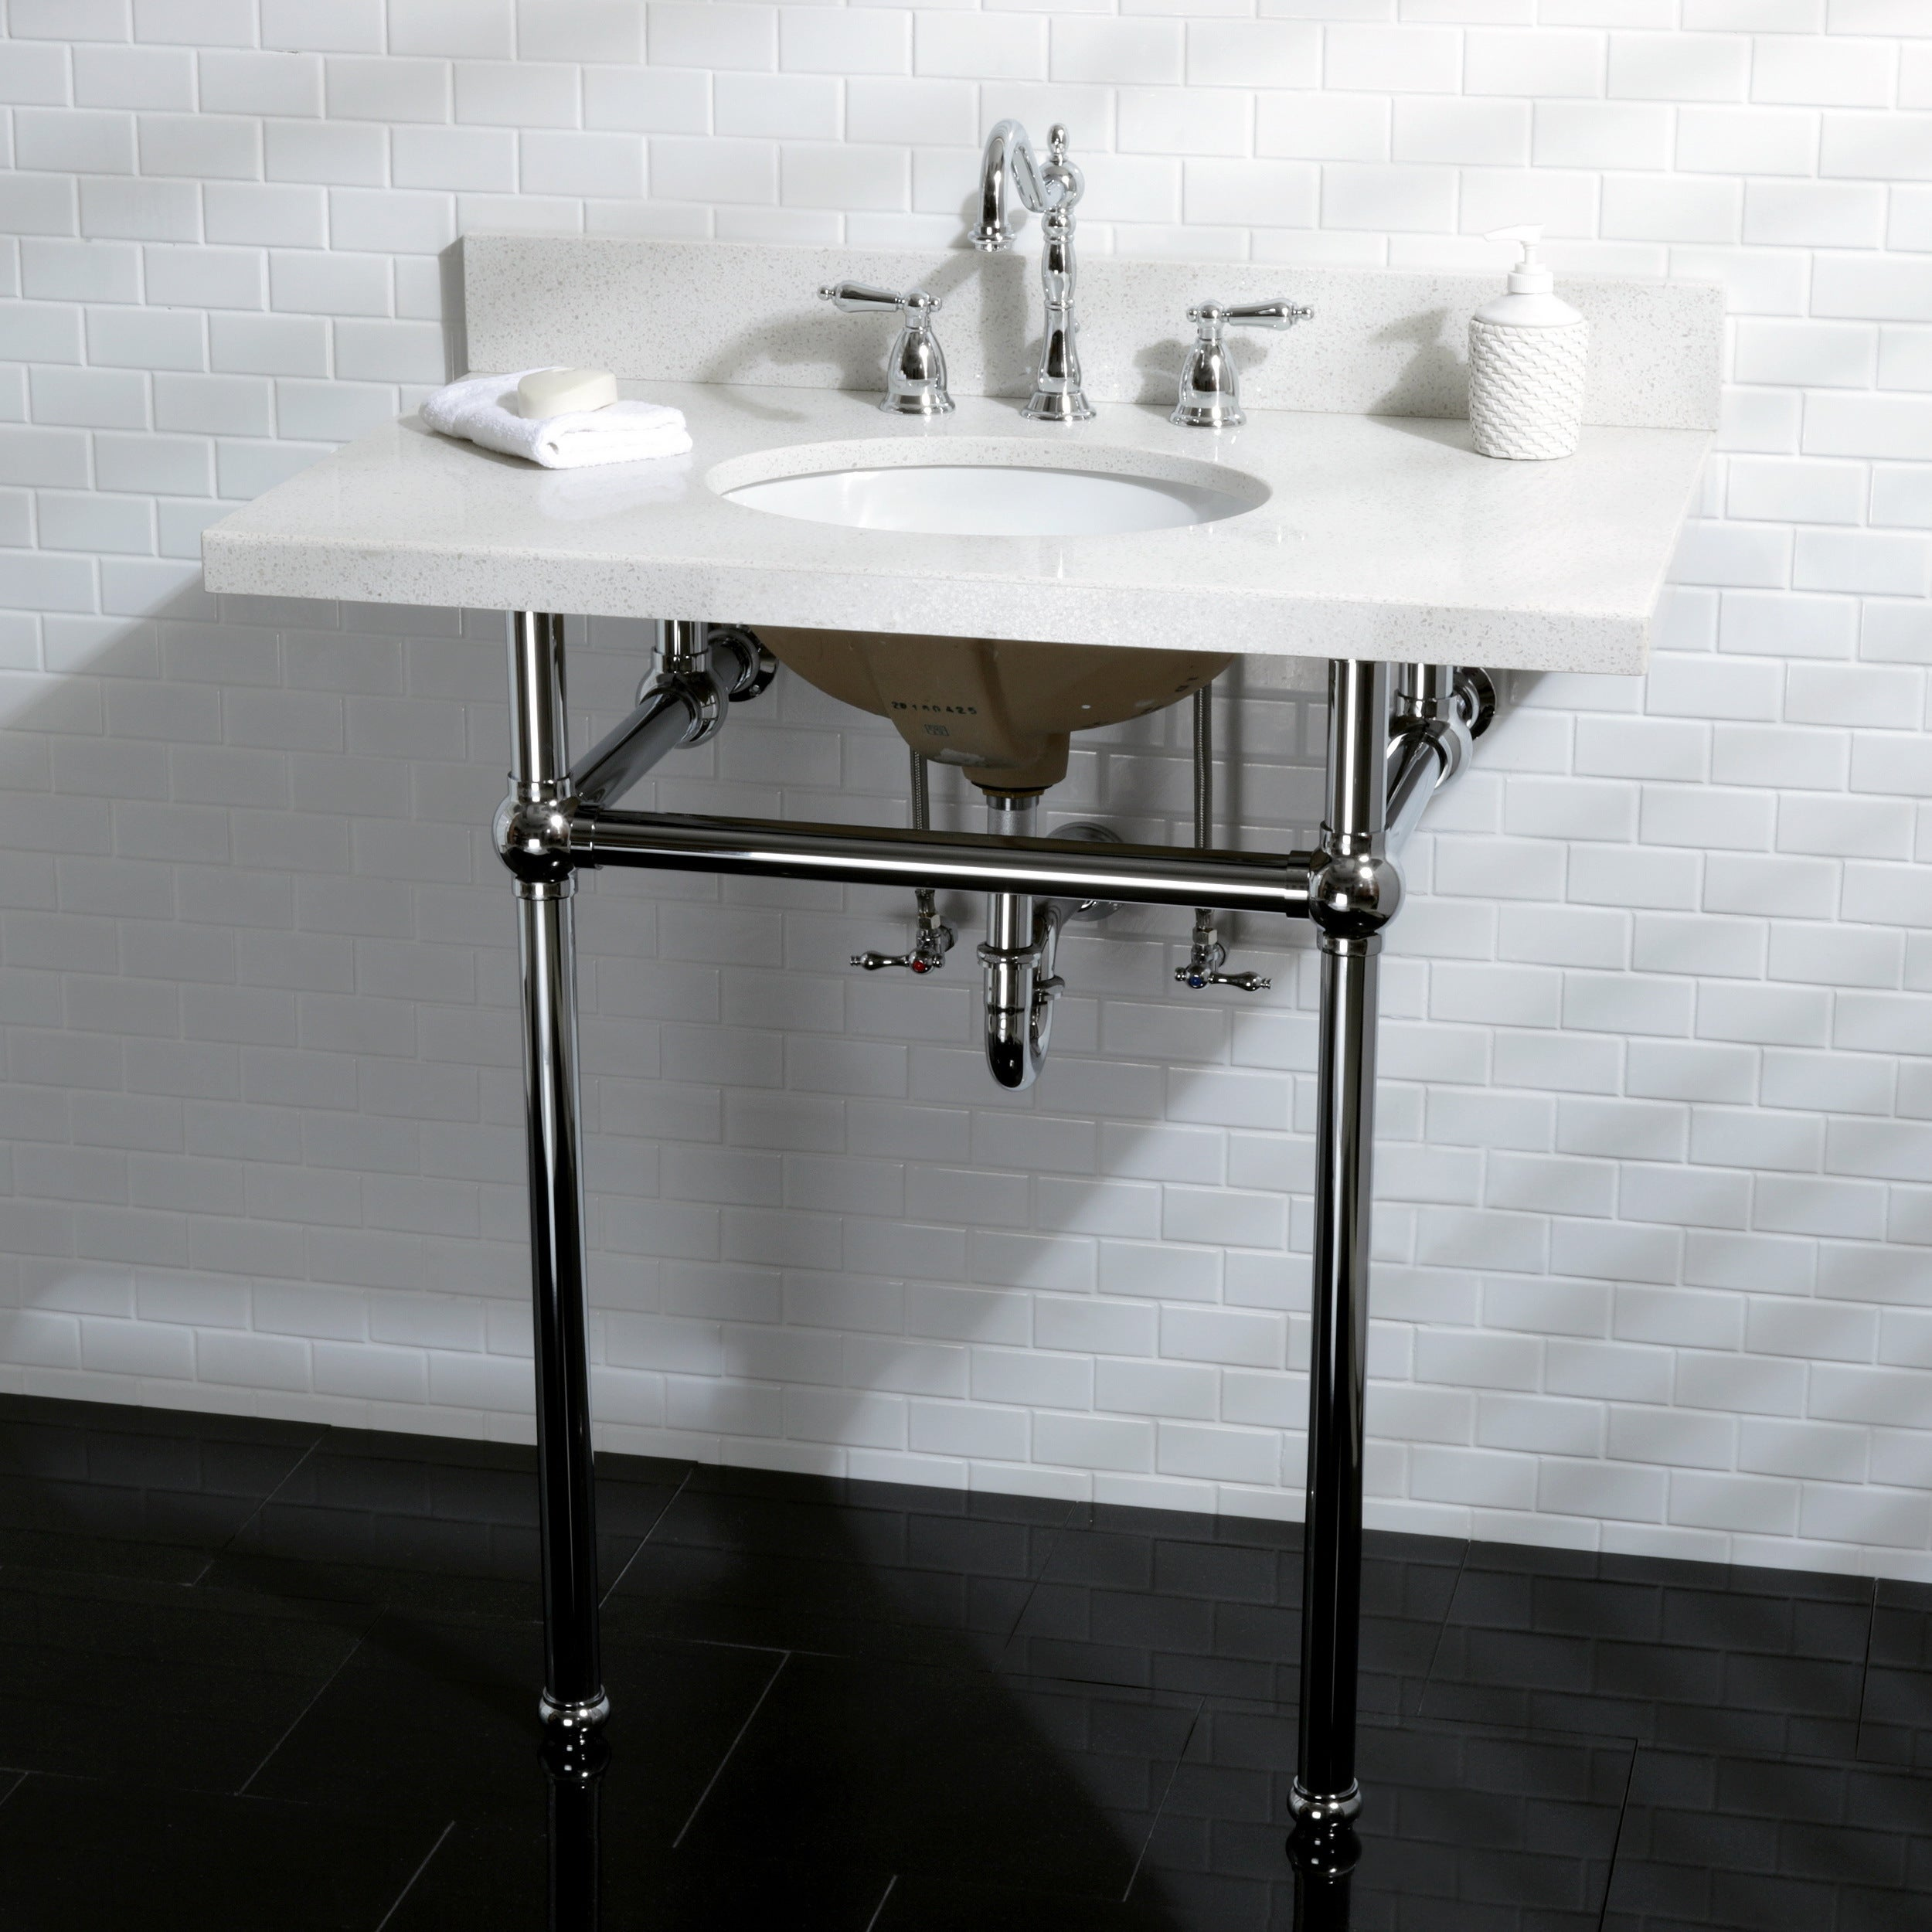 Superbe Shop White Quartz 36 Inch Wall Mount Pedestal Bathroom Sink Vanity With  Metal Stand   Free Shipping Today   Overstock.com   12898447